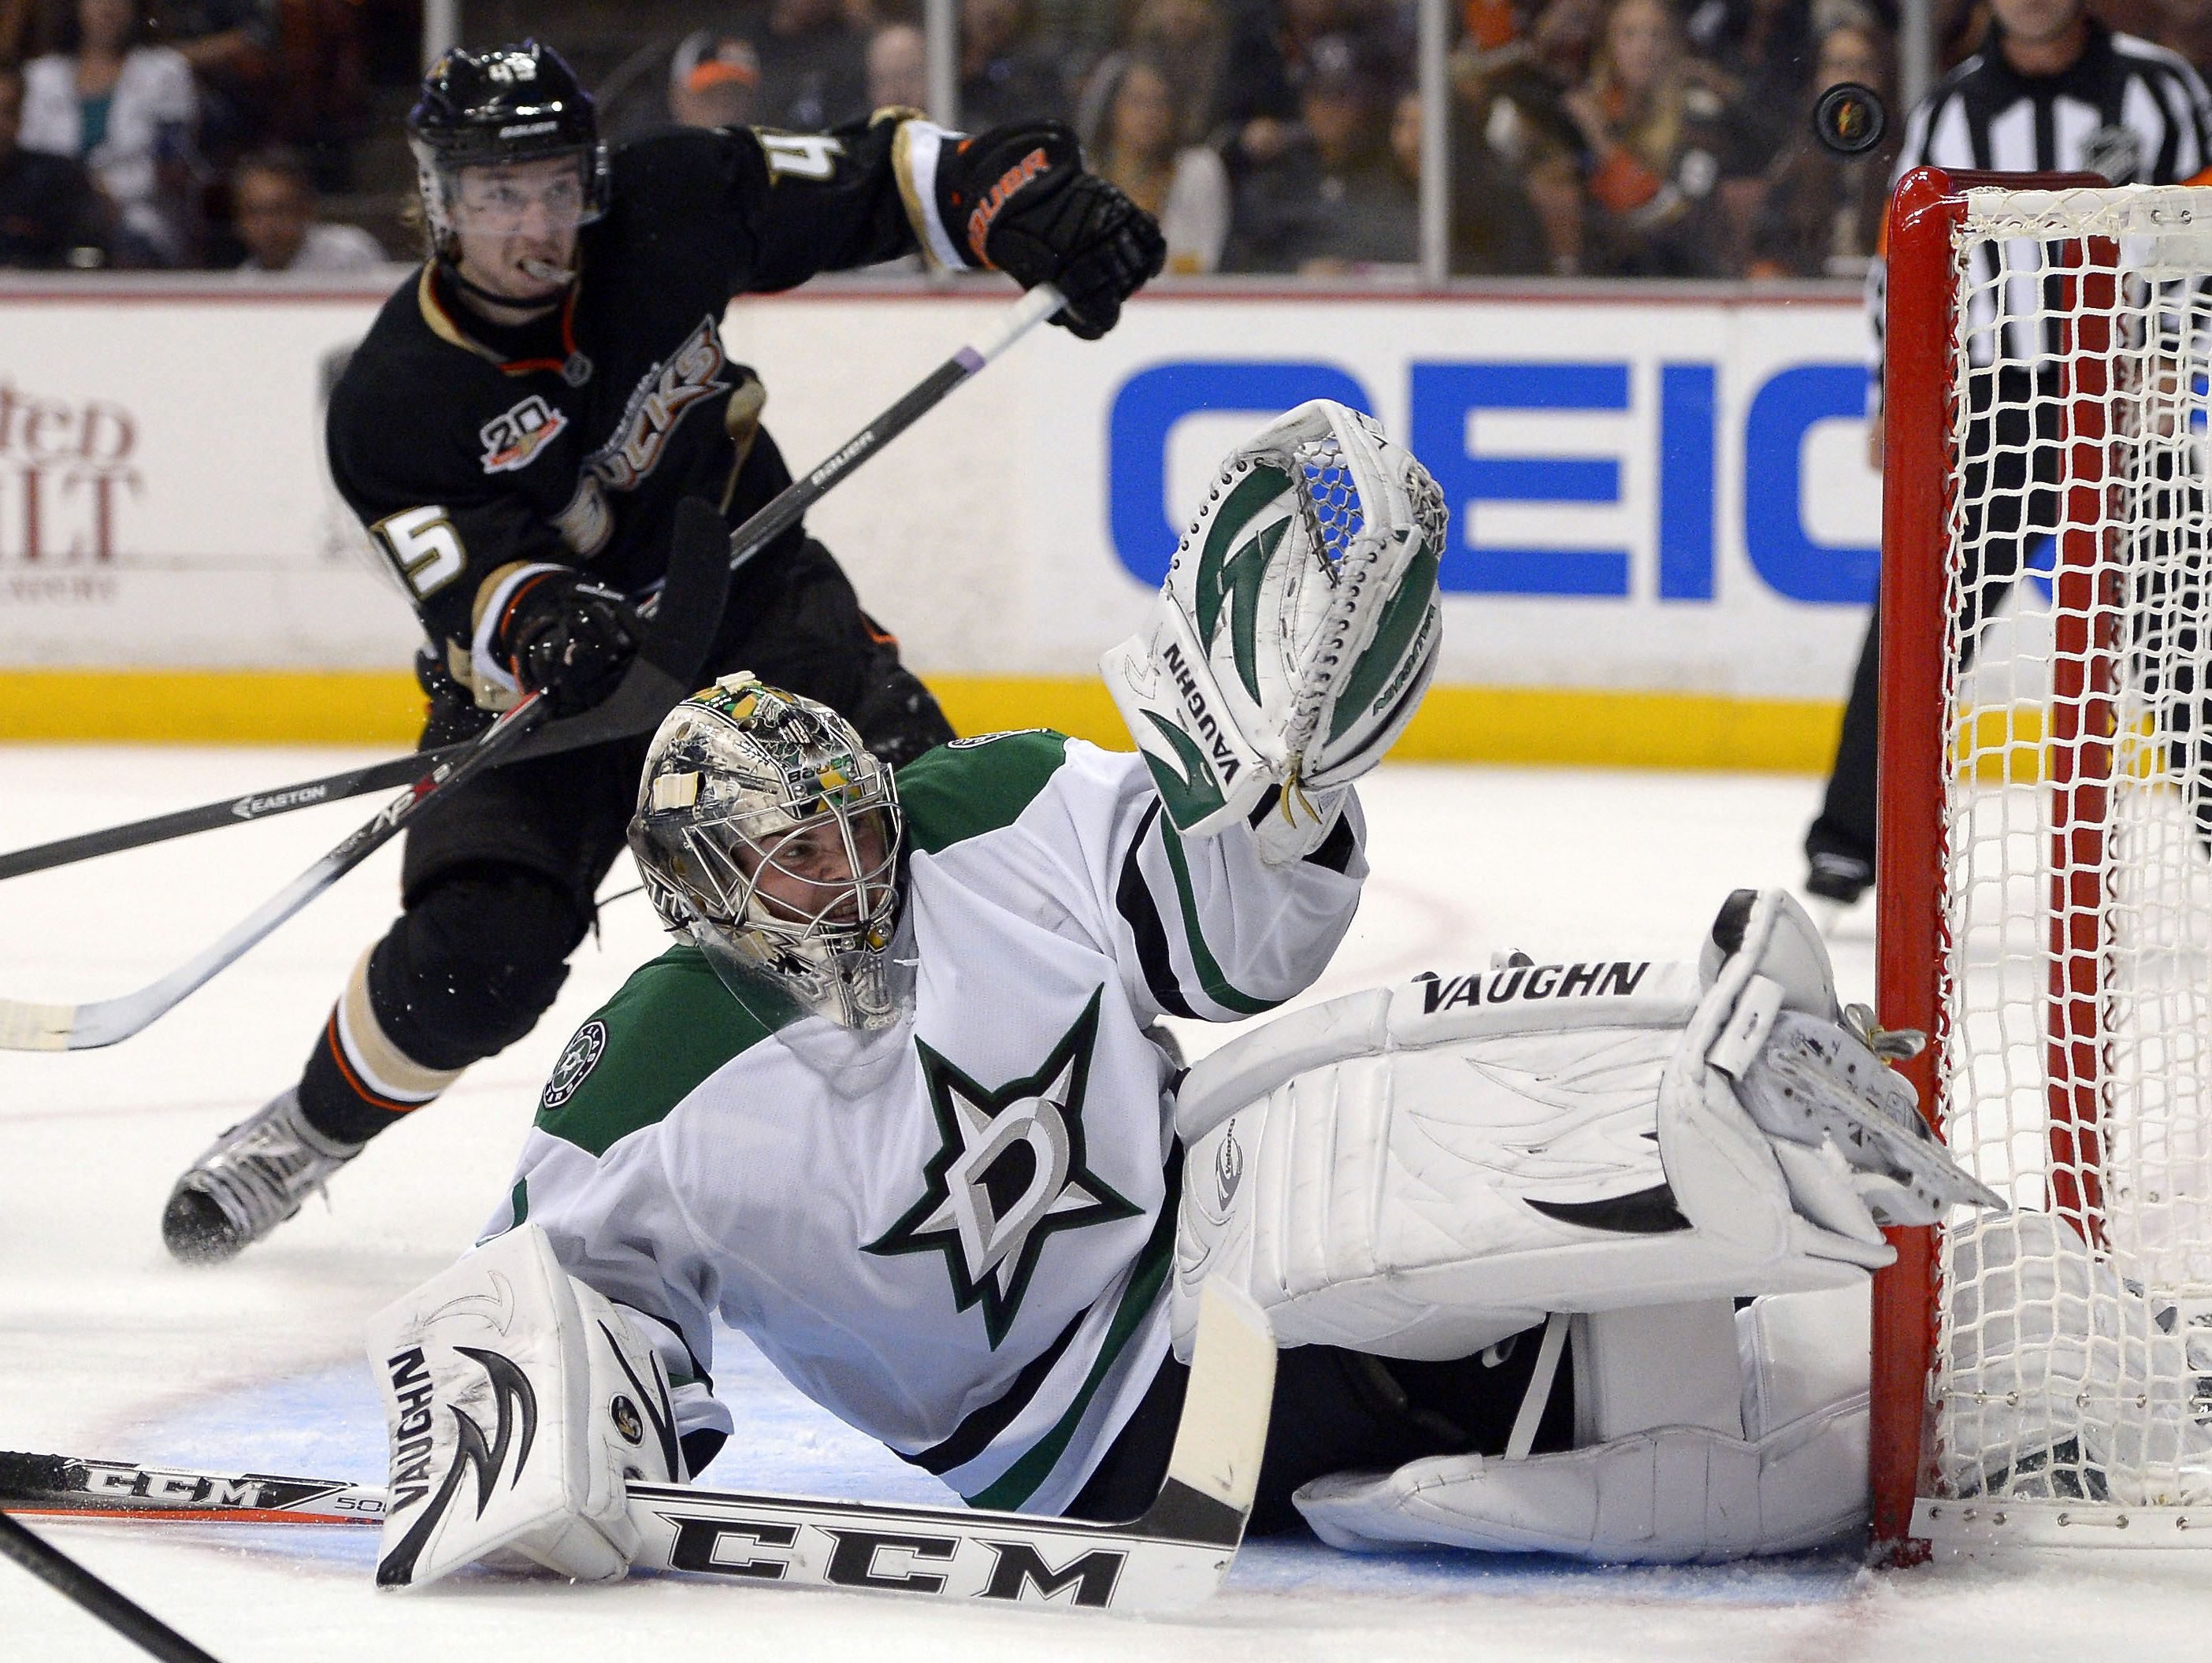 Dallas Stars goalie Jack Campbell, a Port Huron native, deflects a shot in his NHL debut Sunday against the Anaheim Ducks. The Stars lost, 6-3, but Campbell finished with 41 saves. Mark j. terrill/aP Dallas Stars goalie Jack Campbell, below, deflects a shot as Anaheim Ducks defenseman Sami Vatanen looks on during the second period of their NHL hockey game, Sunday, Oct. 20, 2013, in Anaheim, Calif.